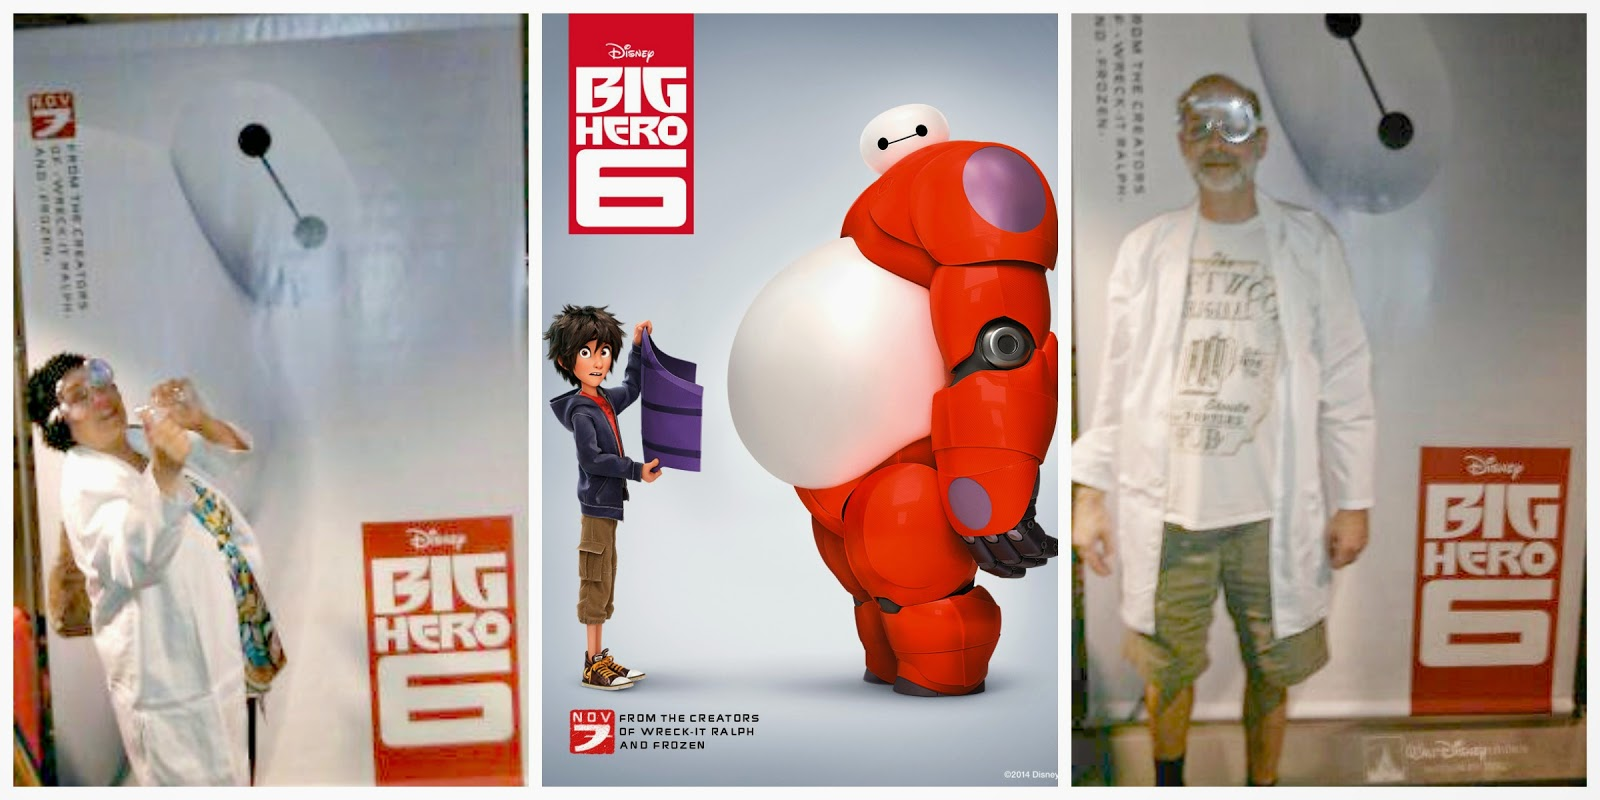 Big Hero 6  Disney Film Screening